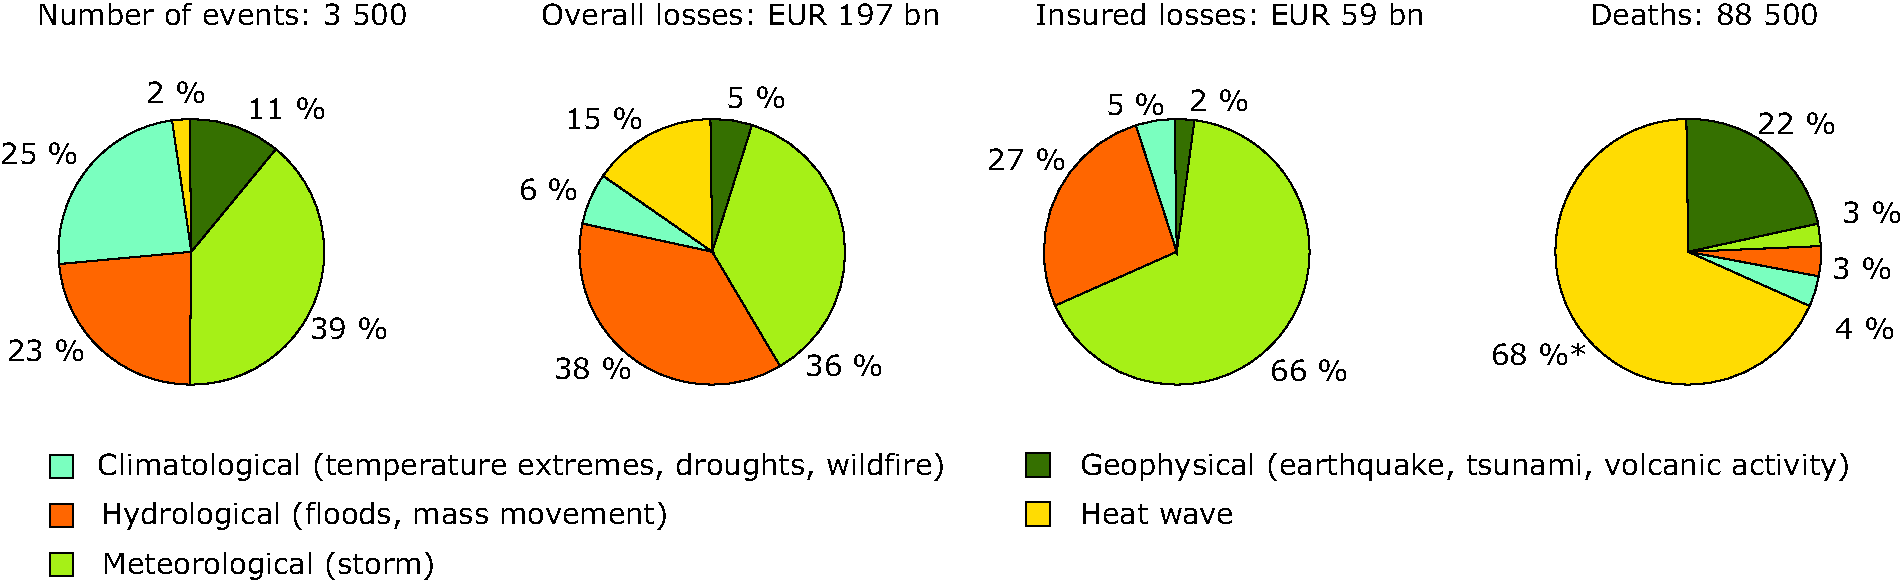 Natural disasters in Europe during 1980-2007